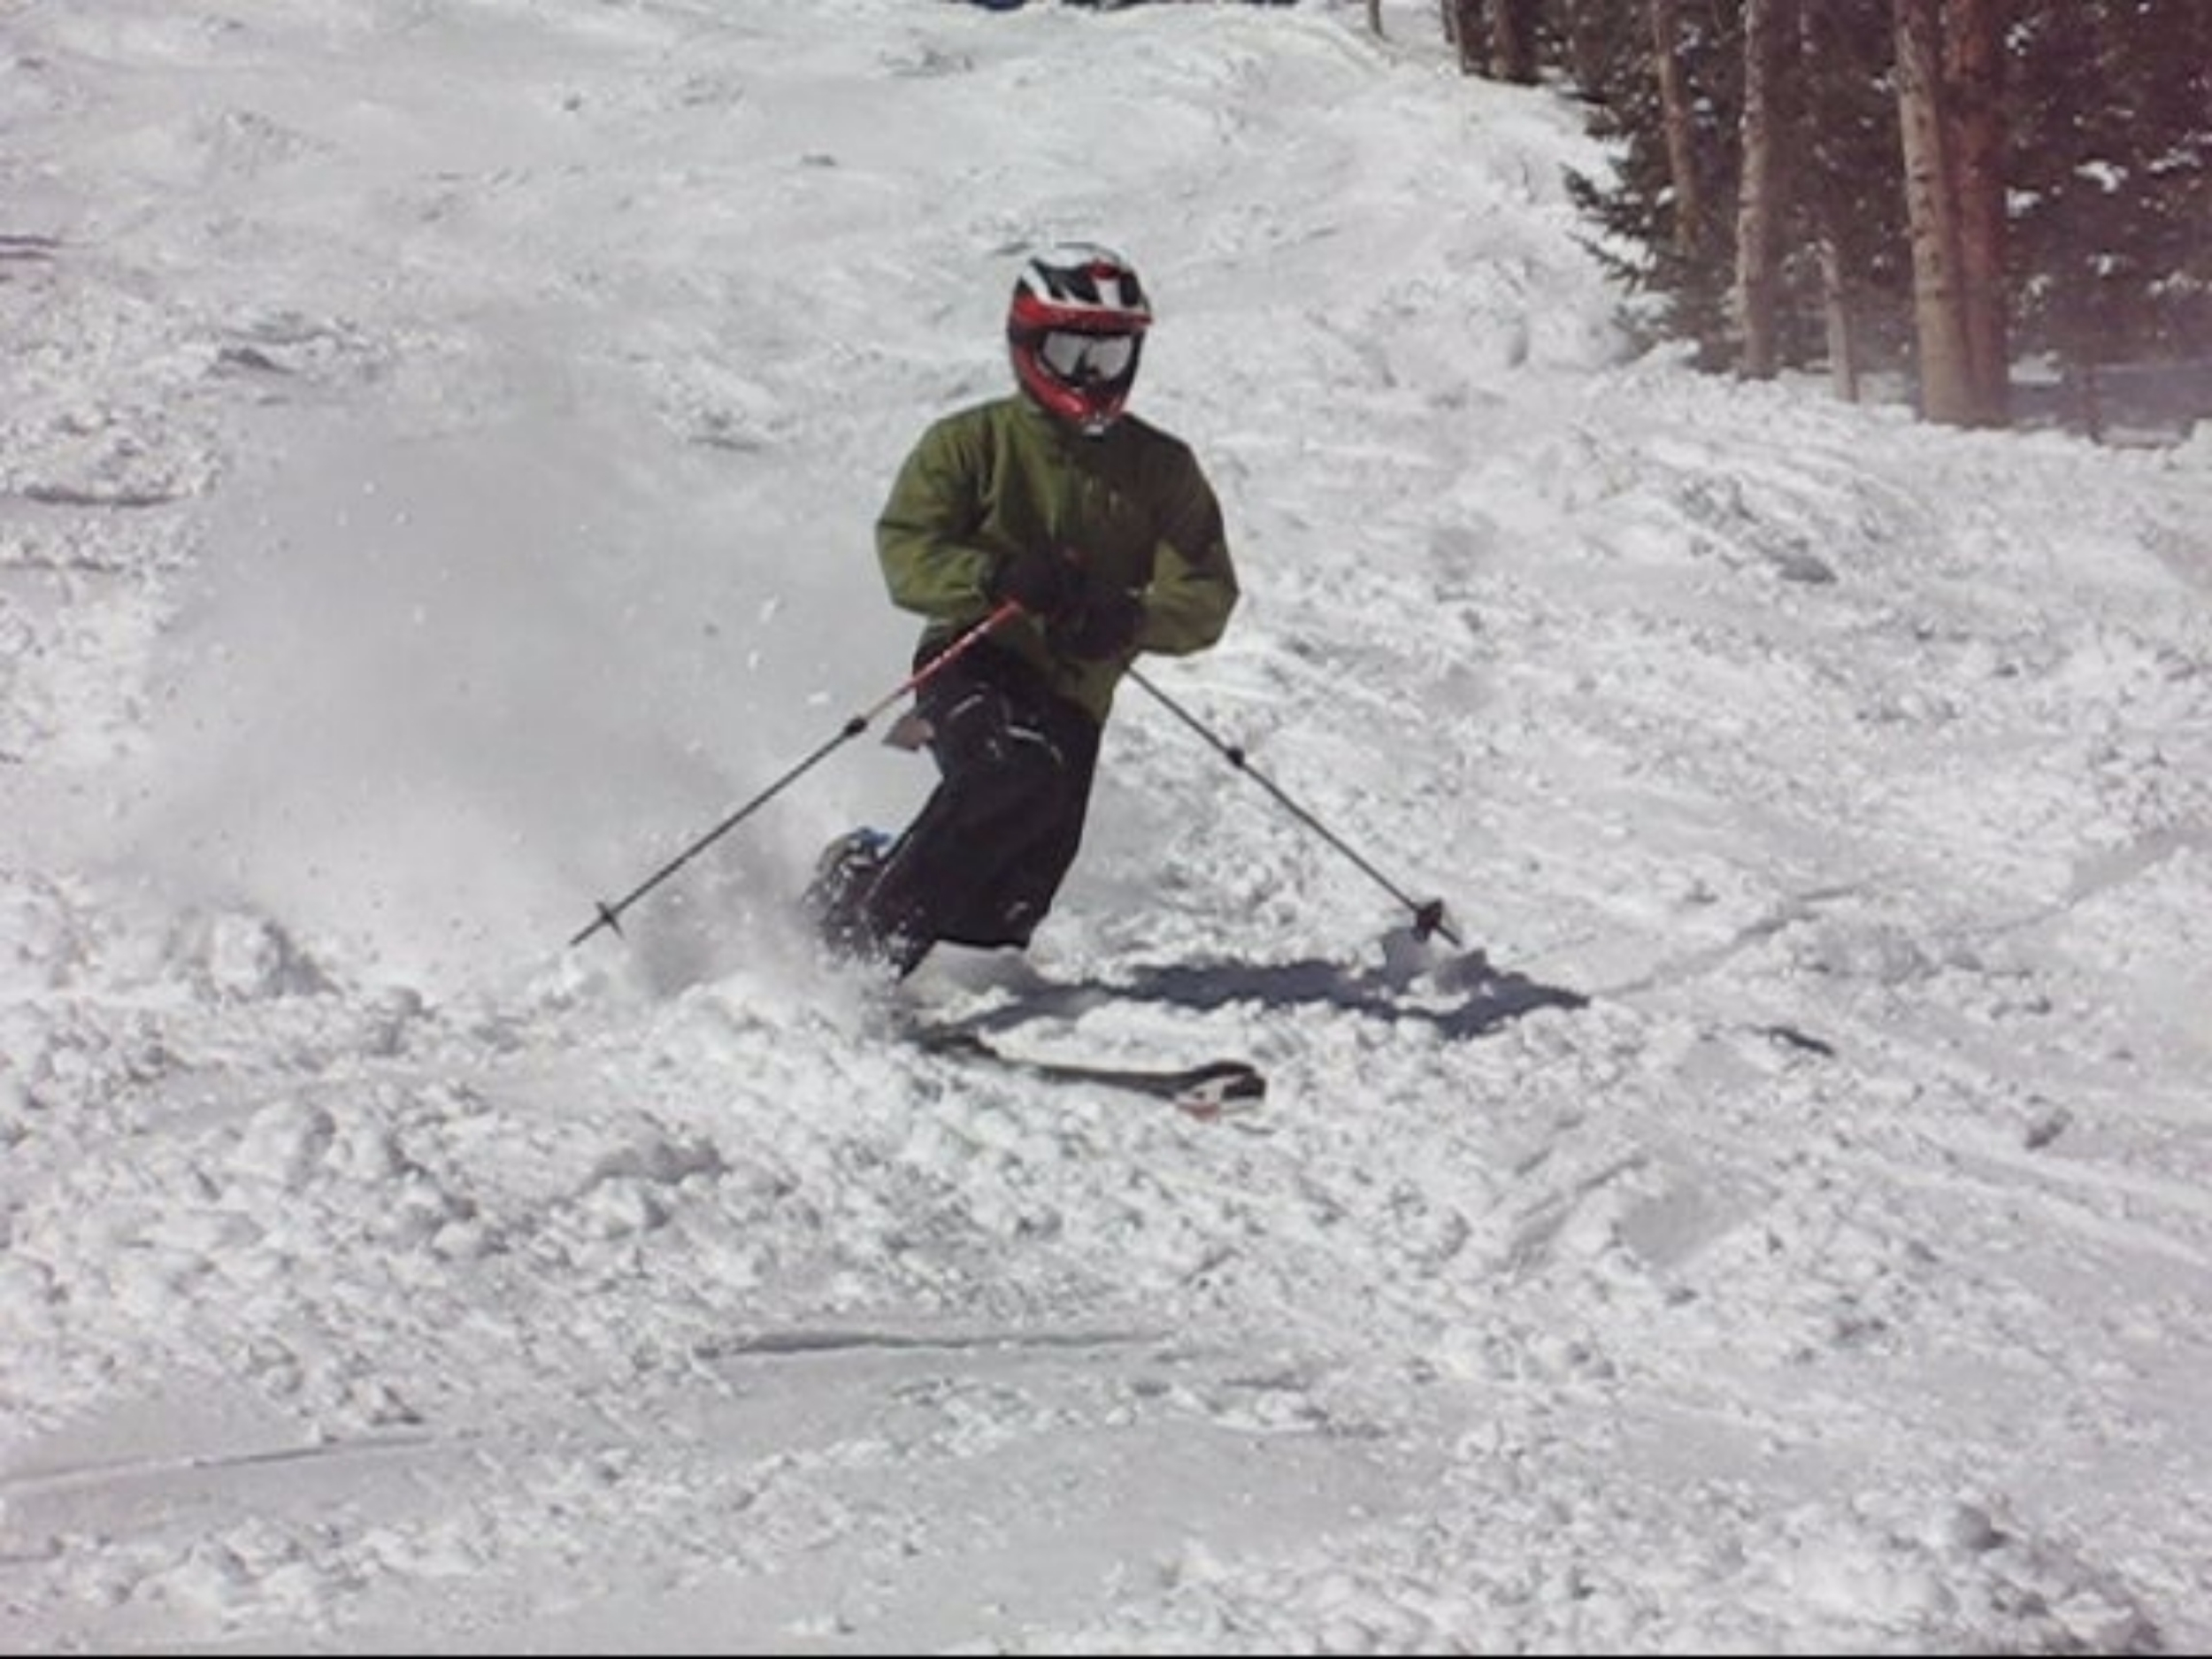 Individual with a below knee amputation carving up the slopes on his telemark skis.